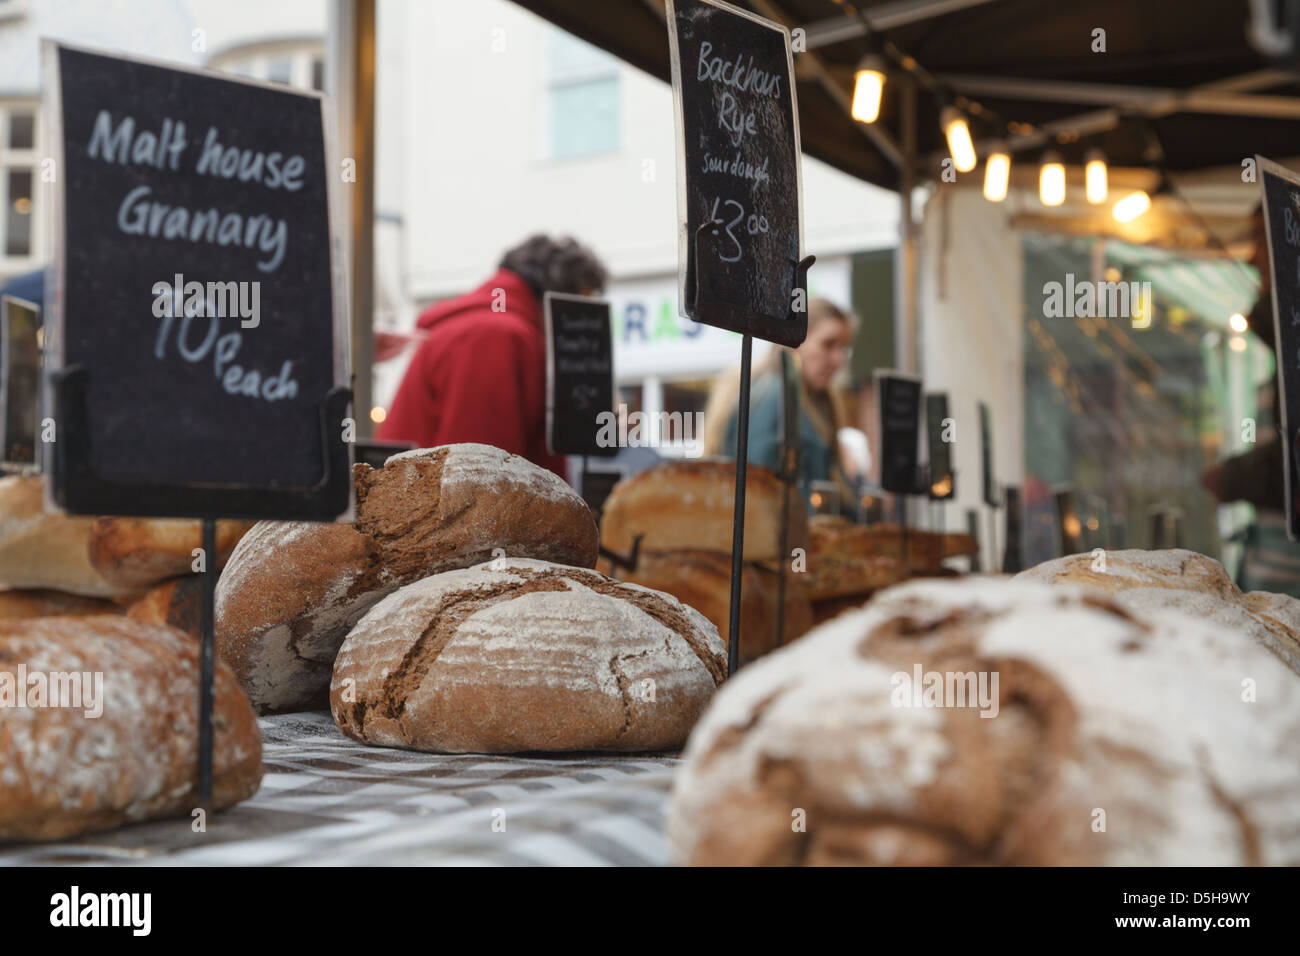 A local artisan bakery selling their loaves in a market in Basingstoke Town Centre - Stock Image